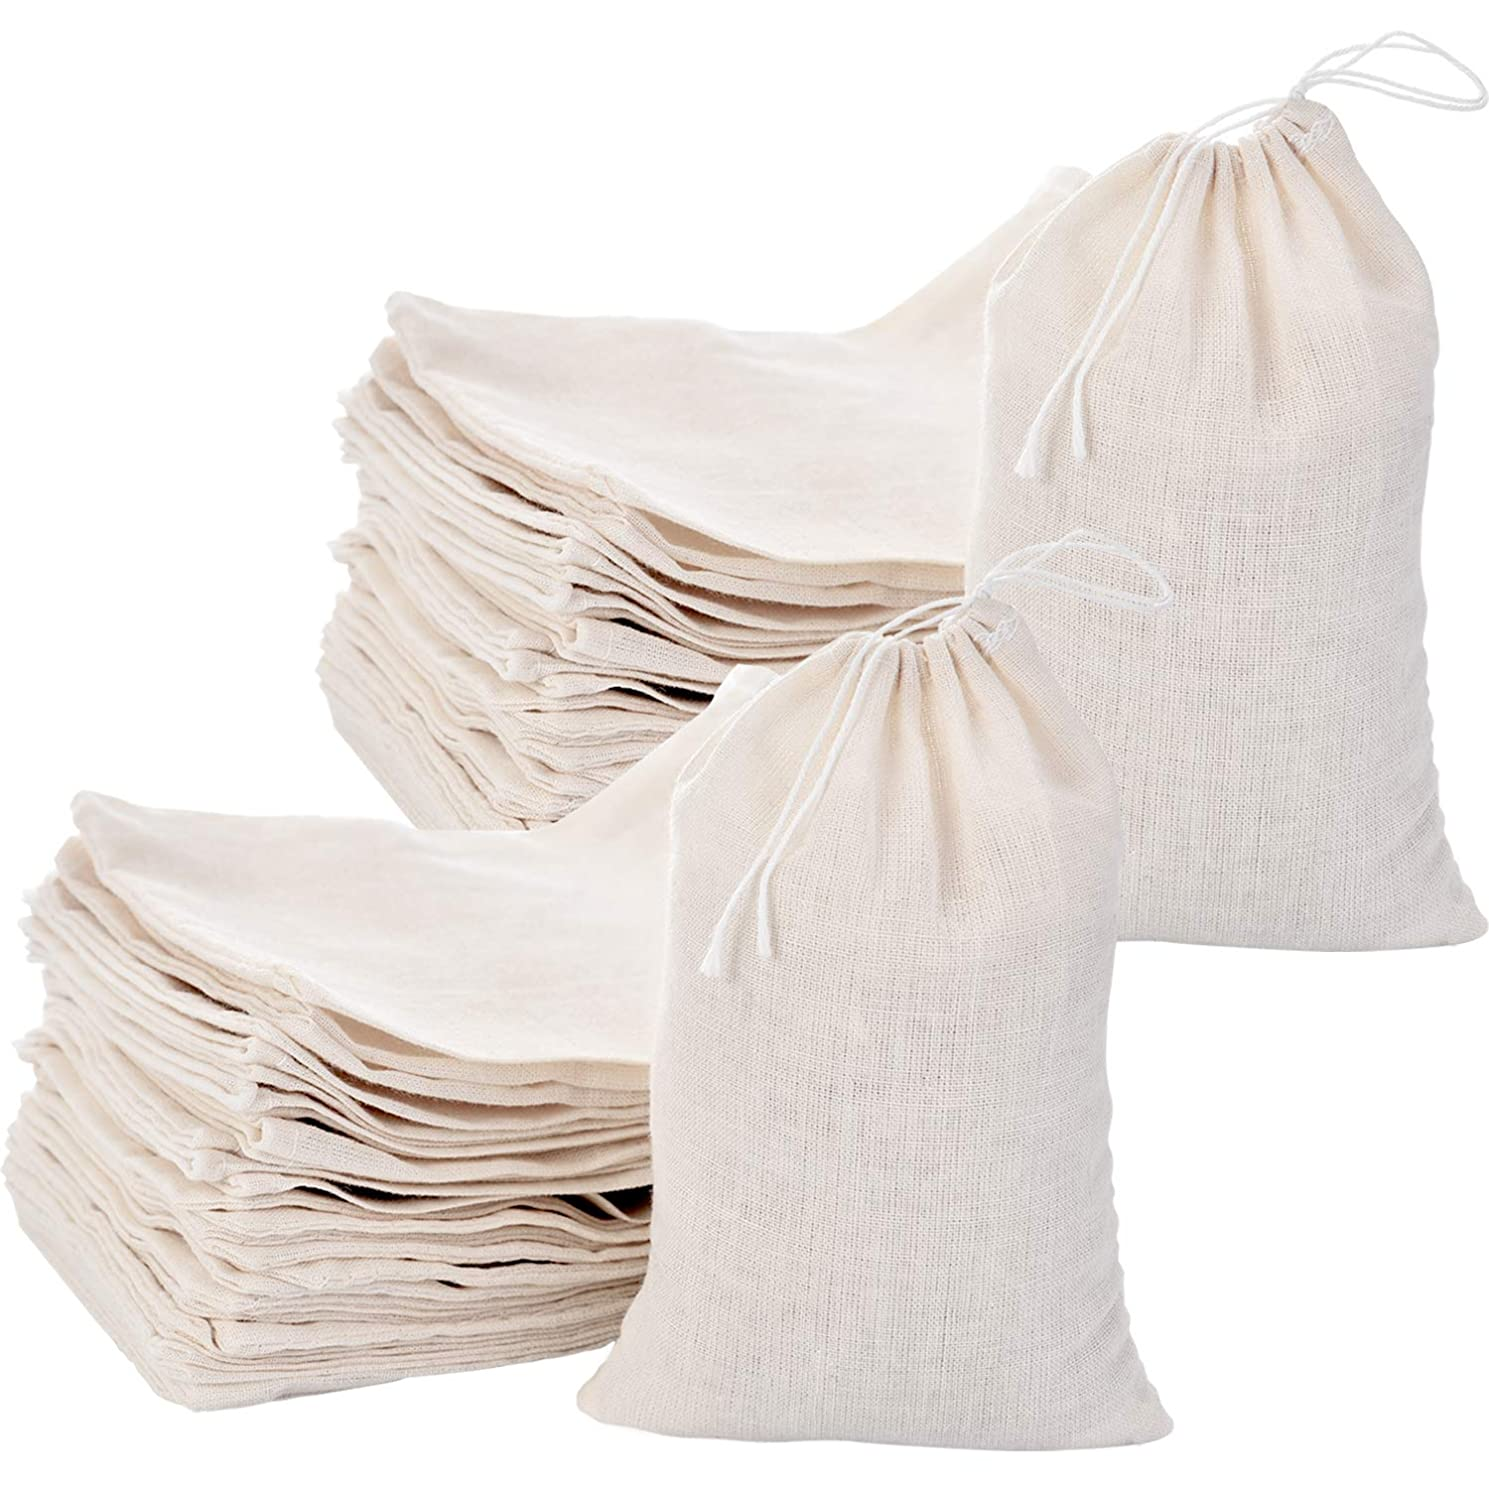 Tatuo 200 Pack Cotton Muslin Bags Burlap Bags Sachet Bag Multipurpose Drawstring Bags for Tea Jewelry Wedding Party Favors Storage (4 x 6 Inches)